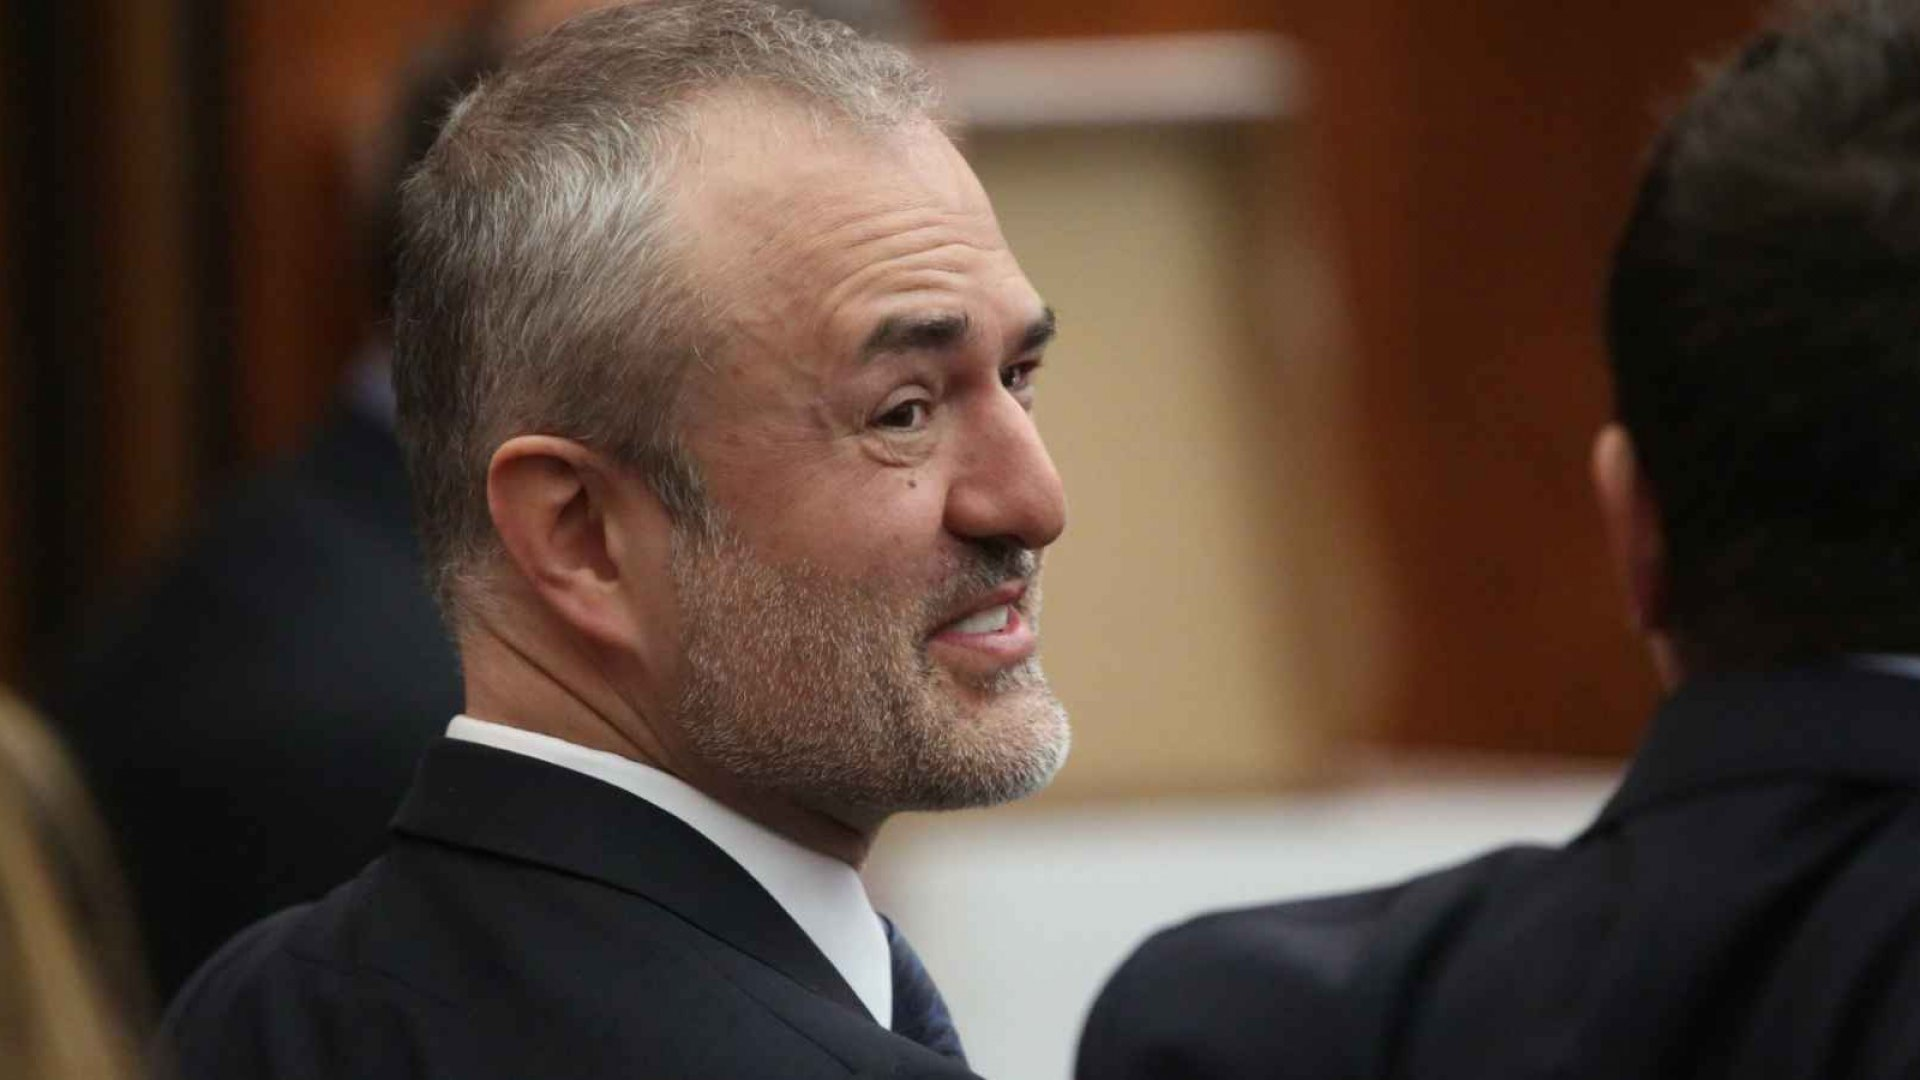 Gawker Founder Nick Denton Just Filed For Bankruptcy